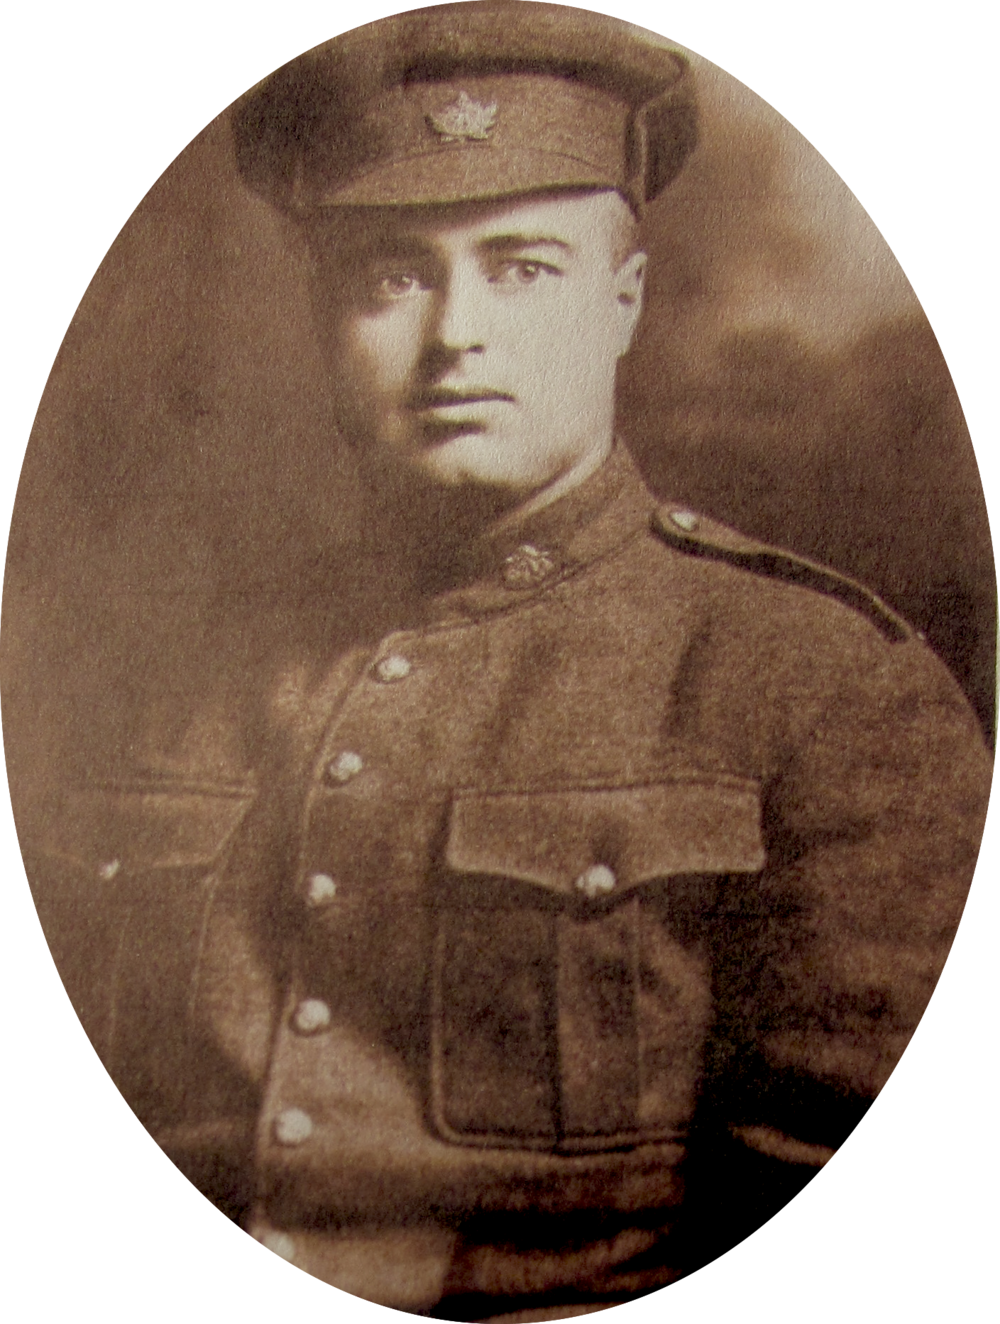 Private Hugh Lloyd Hughes